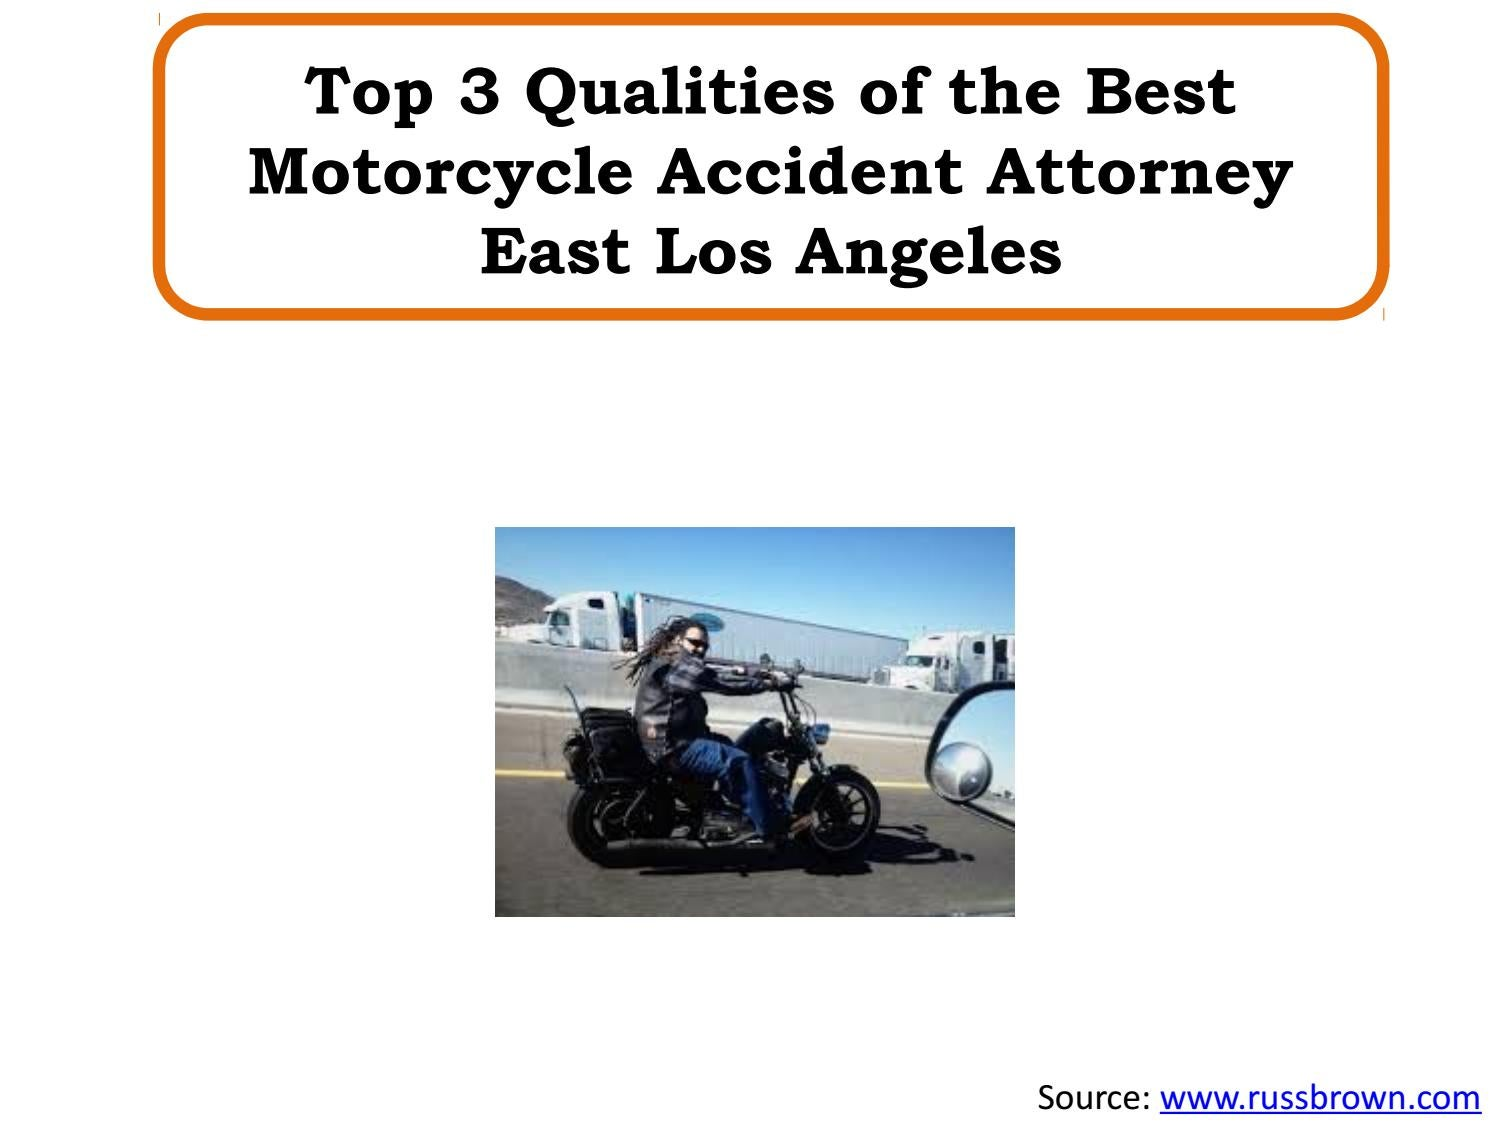 Top 3 Qualities of the Best Motorcycle Accident Attorney